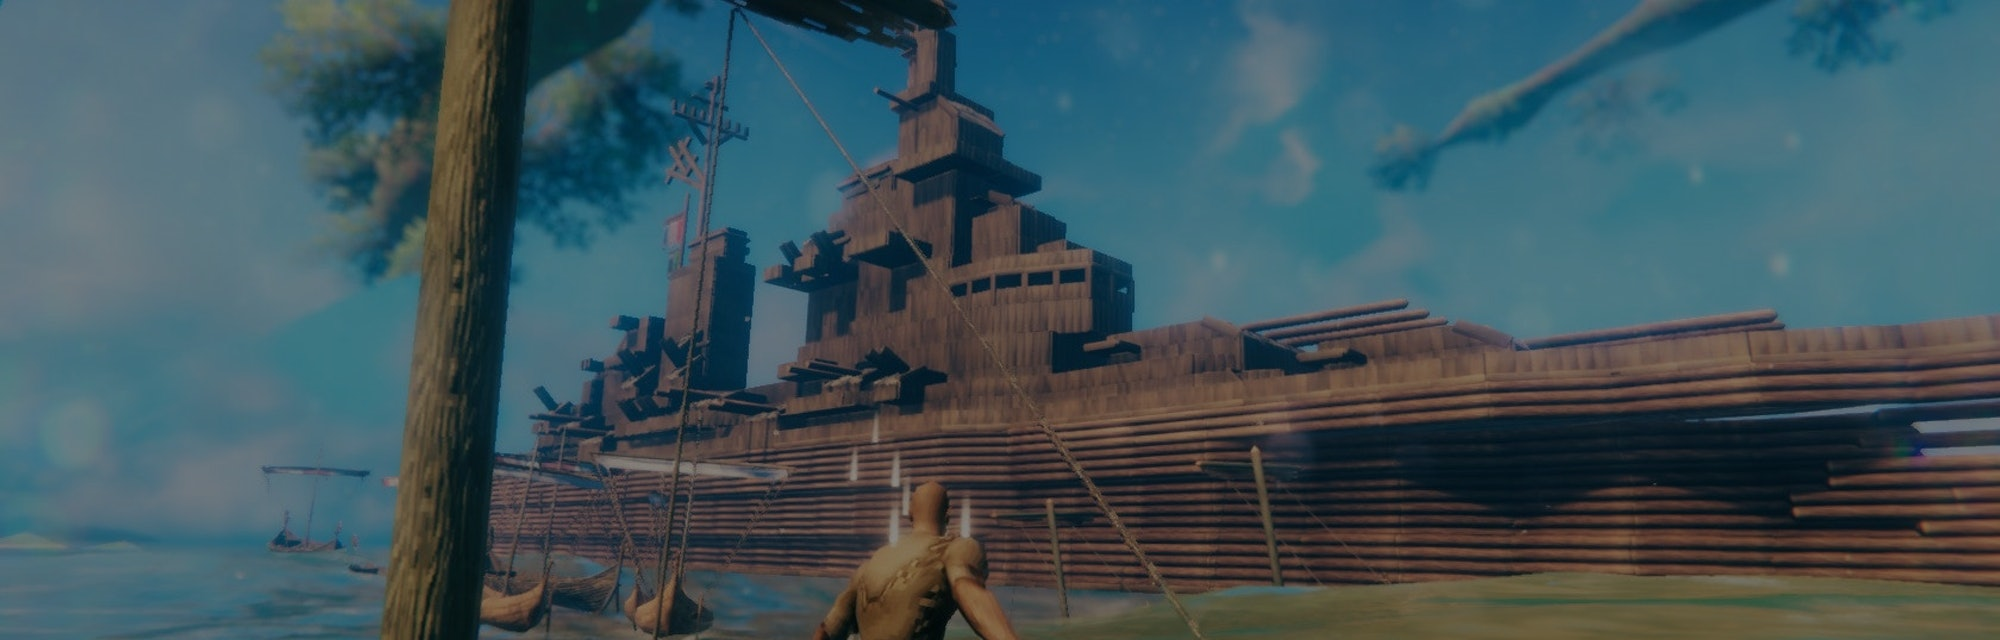 A player of 'Valheim' recreated the USS Iowa battleship in the Viking survival game.